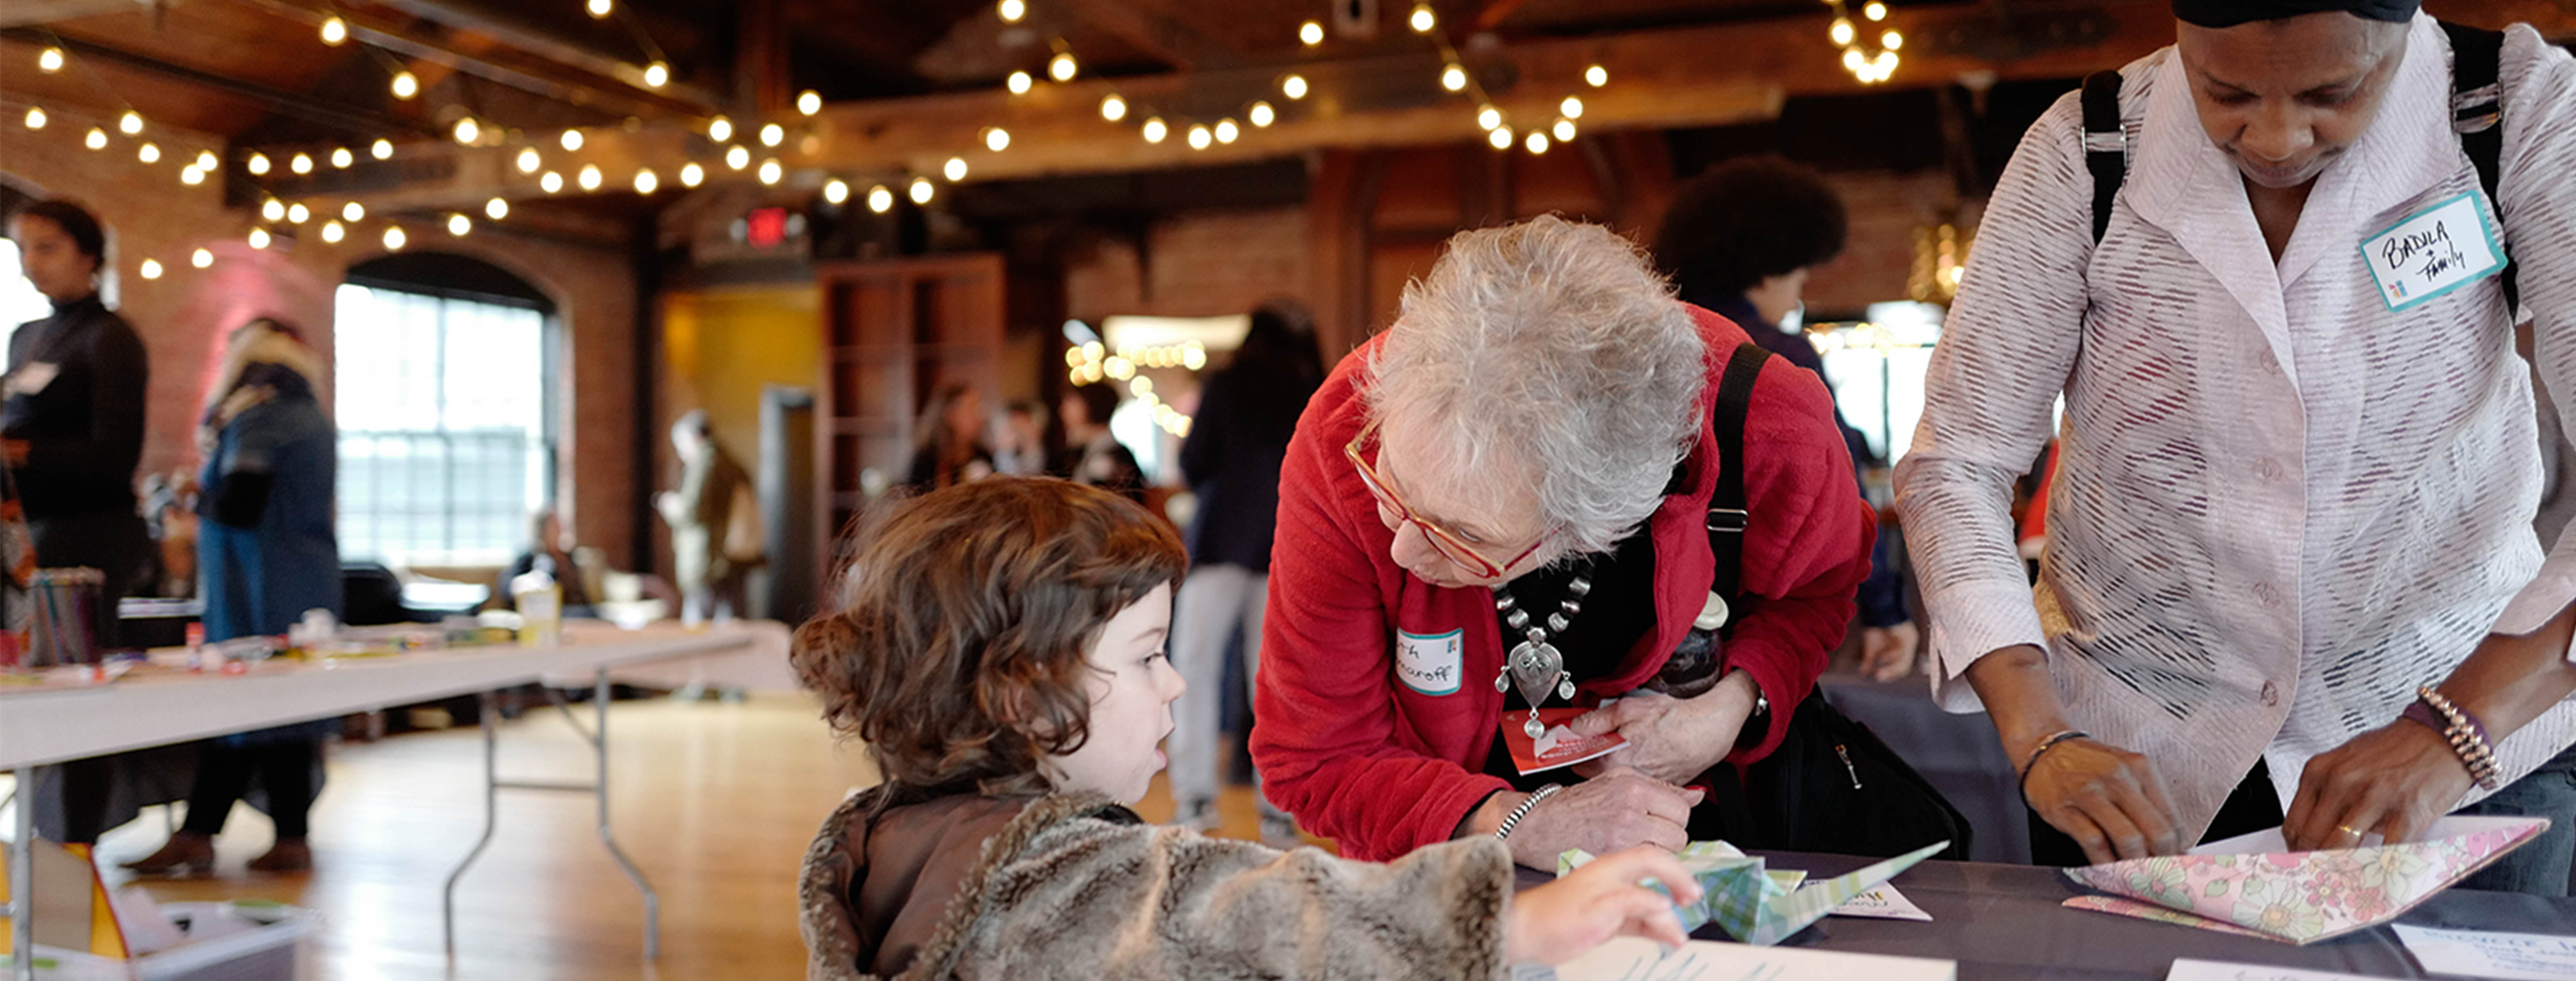 a woman with gray hair and light skin in a red sweater leans forward over a table, her head turned towards a young light-skinned girl in a furry brown coat. next to them, a medium-skinned woman in a white shirt and black head wrap folds a piece of paper. they are in a room with tall ceilings, exposed wooden rafters and string lights.